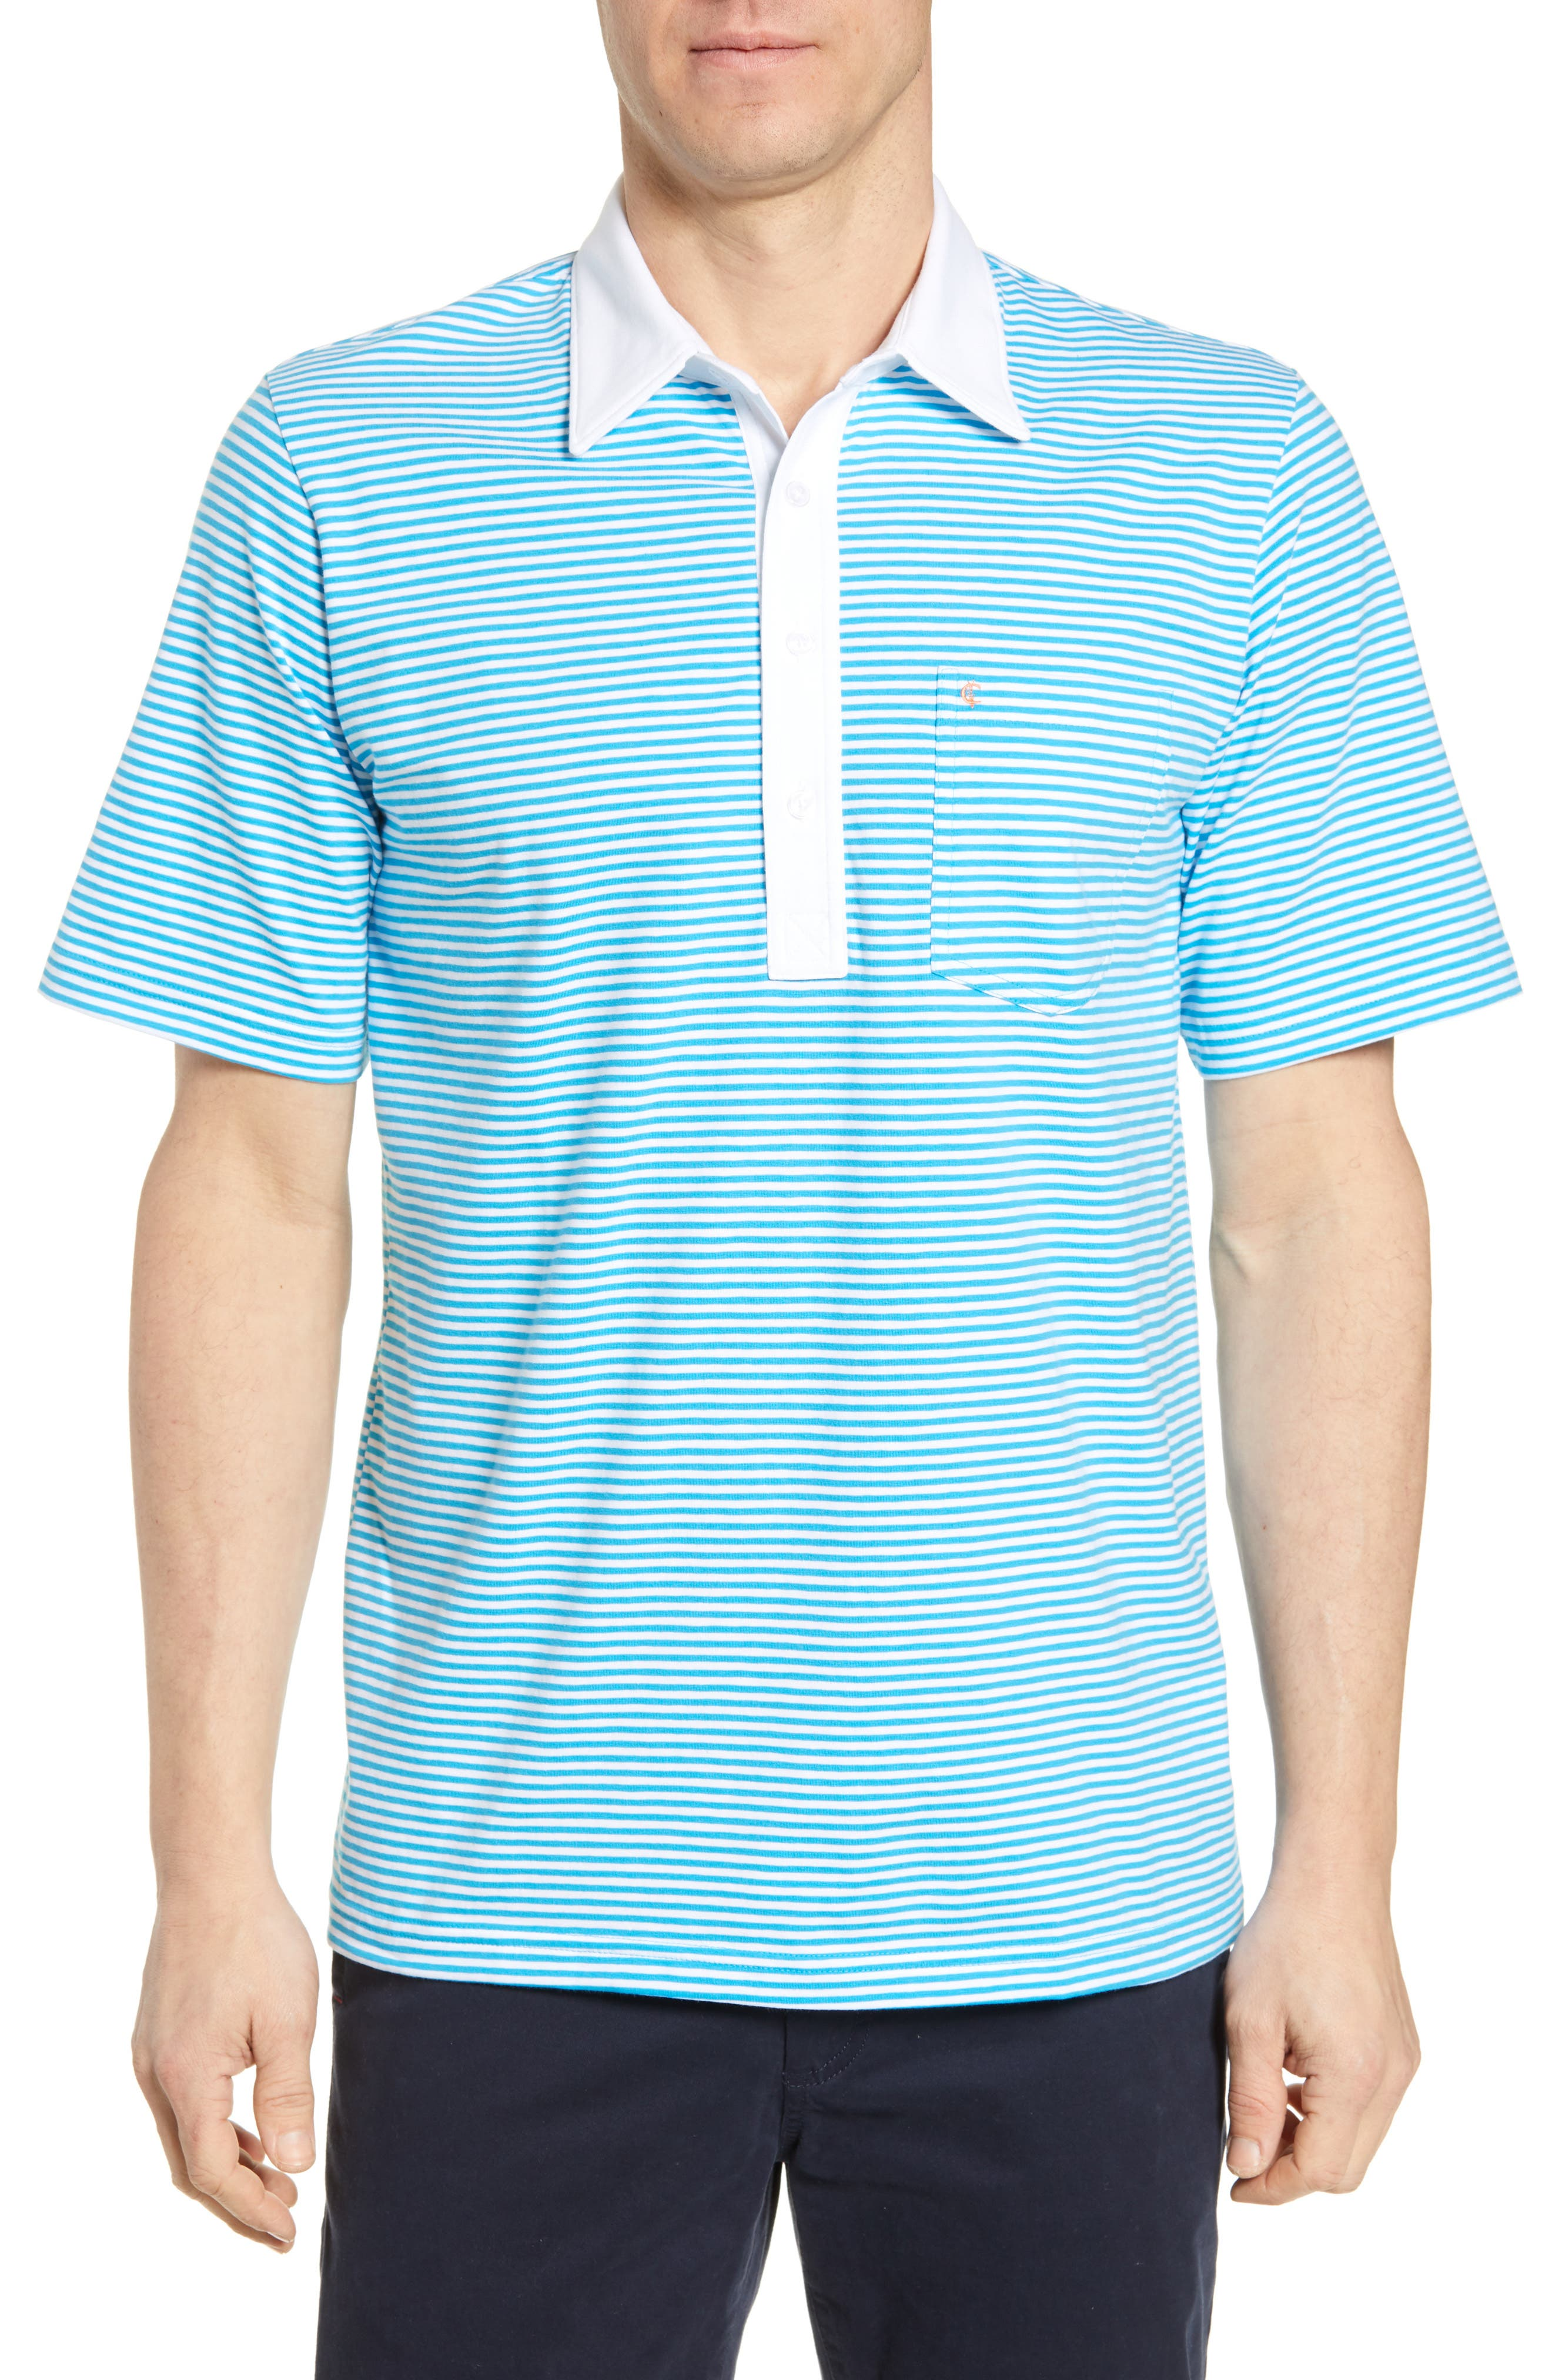 Criquet Regular Fit Players Stripe Stretch Jersey Polo, Blue